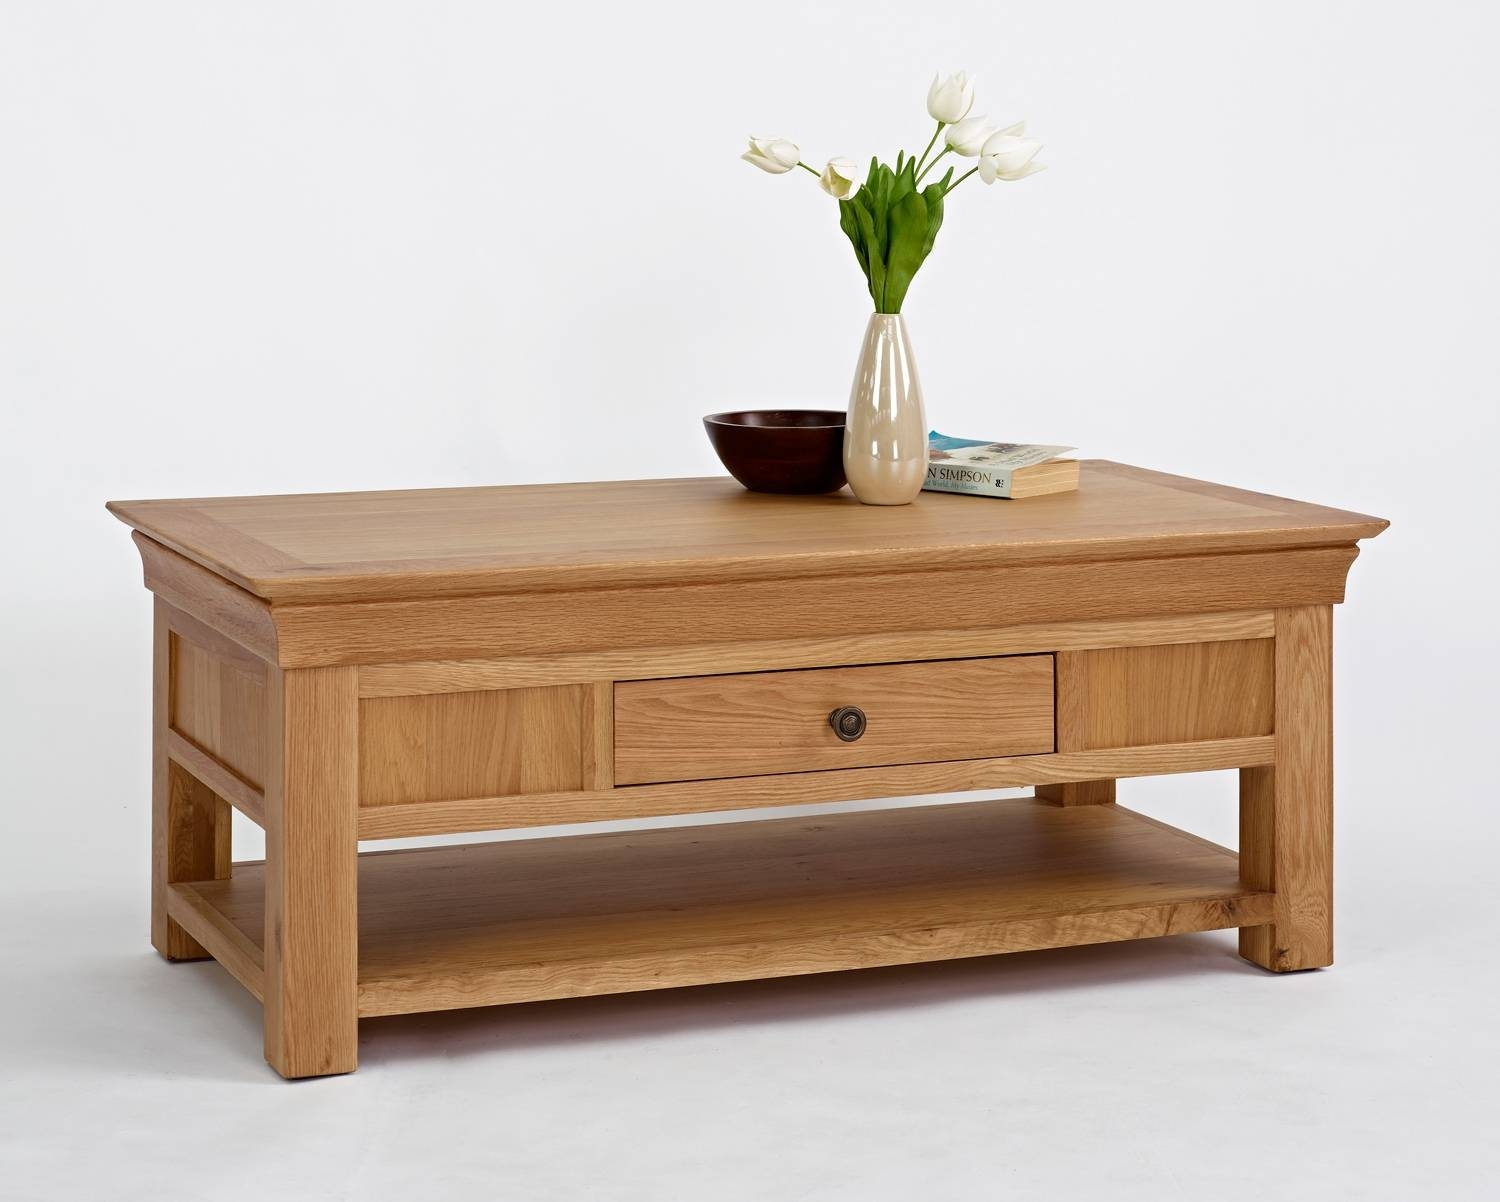 Bordeaux Oak Coffee Table With Shelf & Drawer inside Oak Coffee Table With Drawers (Image 1 of 15)